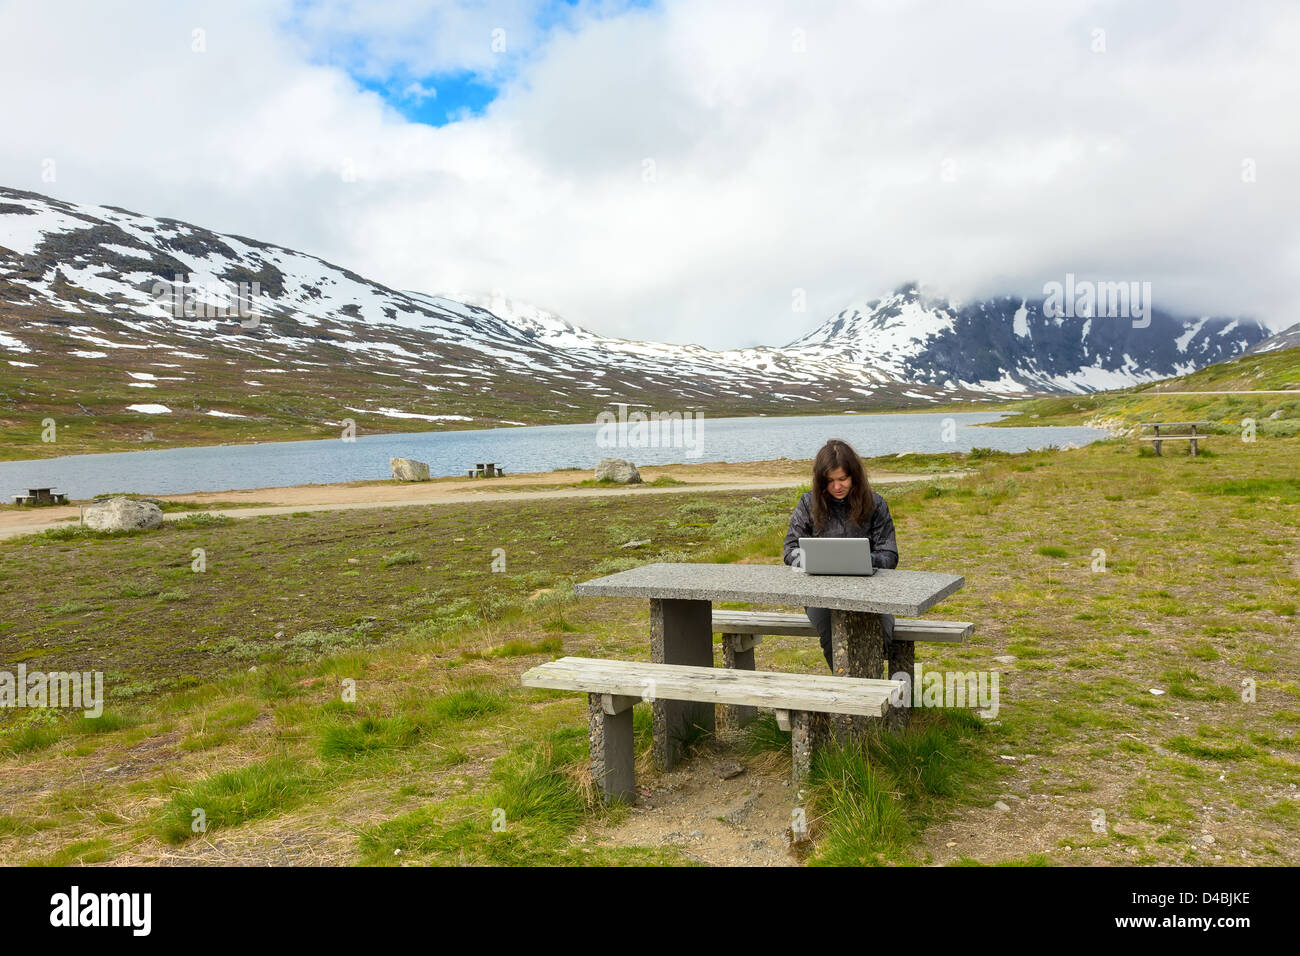 Young girl working on a laptop among mountains, Norway Stock Photo